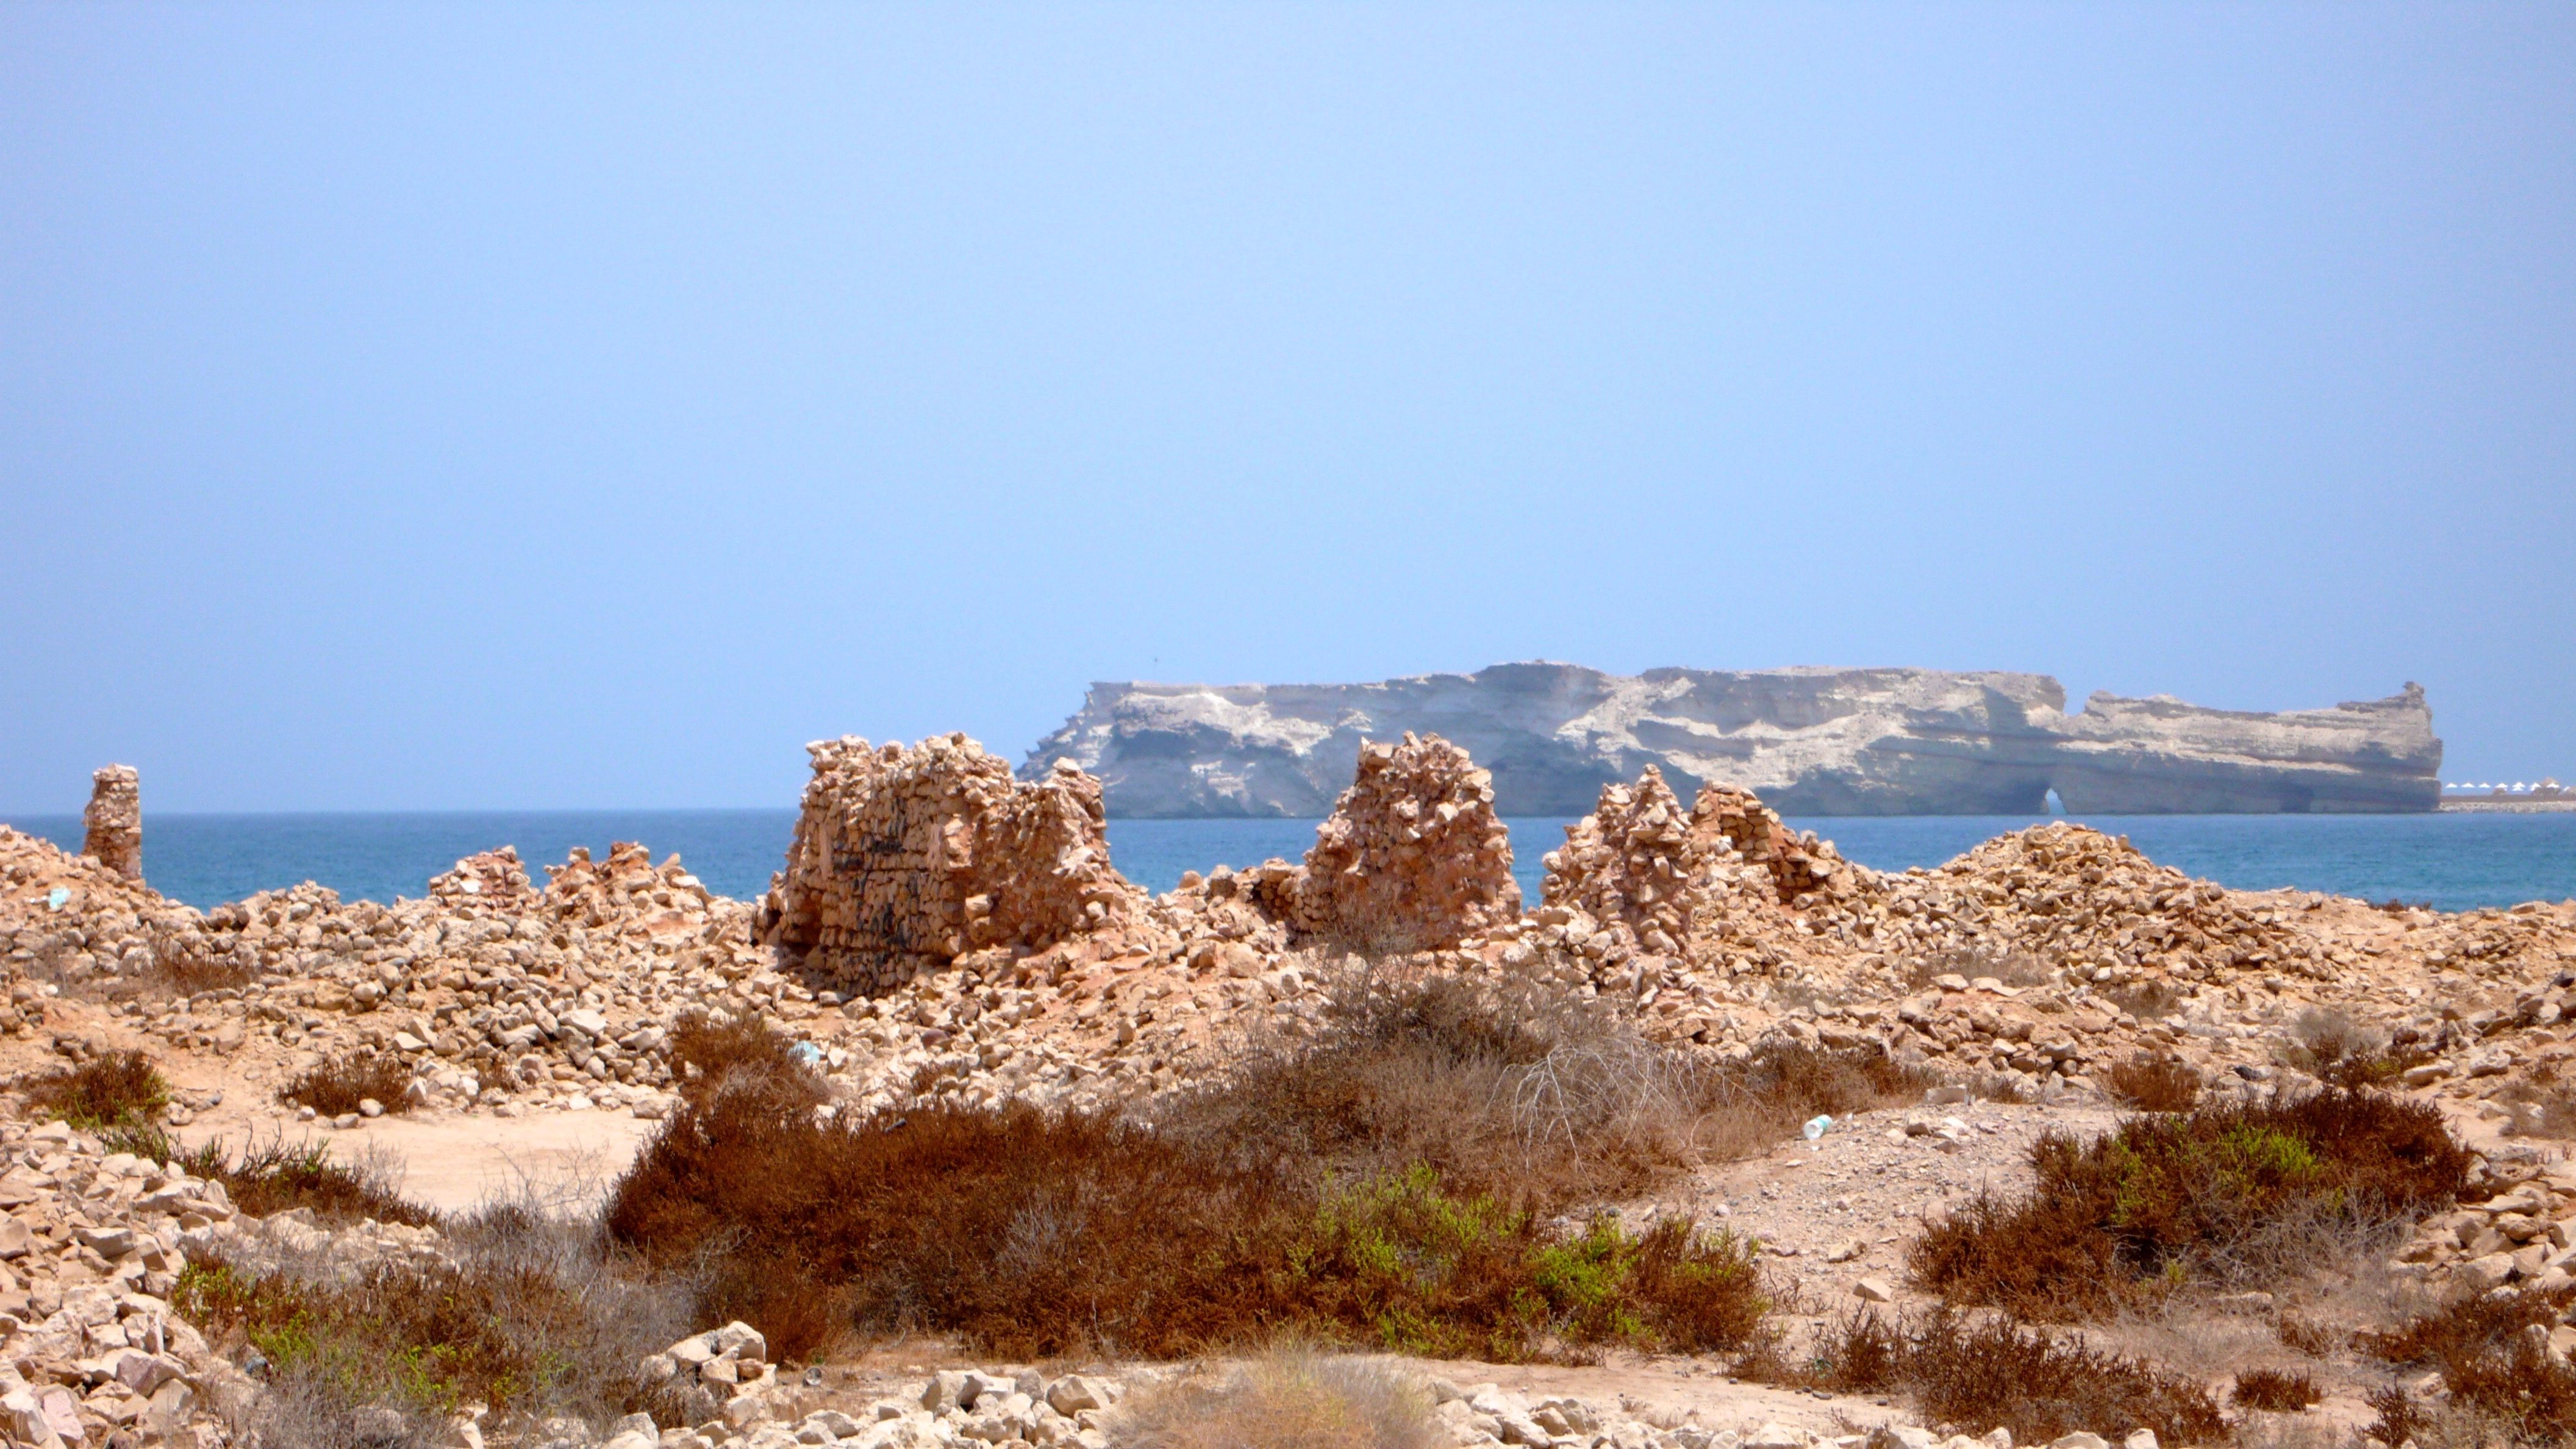 Remains of a leper colony on a beautiful beach known by expats as 'Martini beach' in Oman.